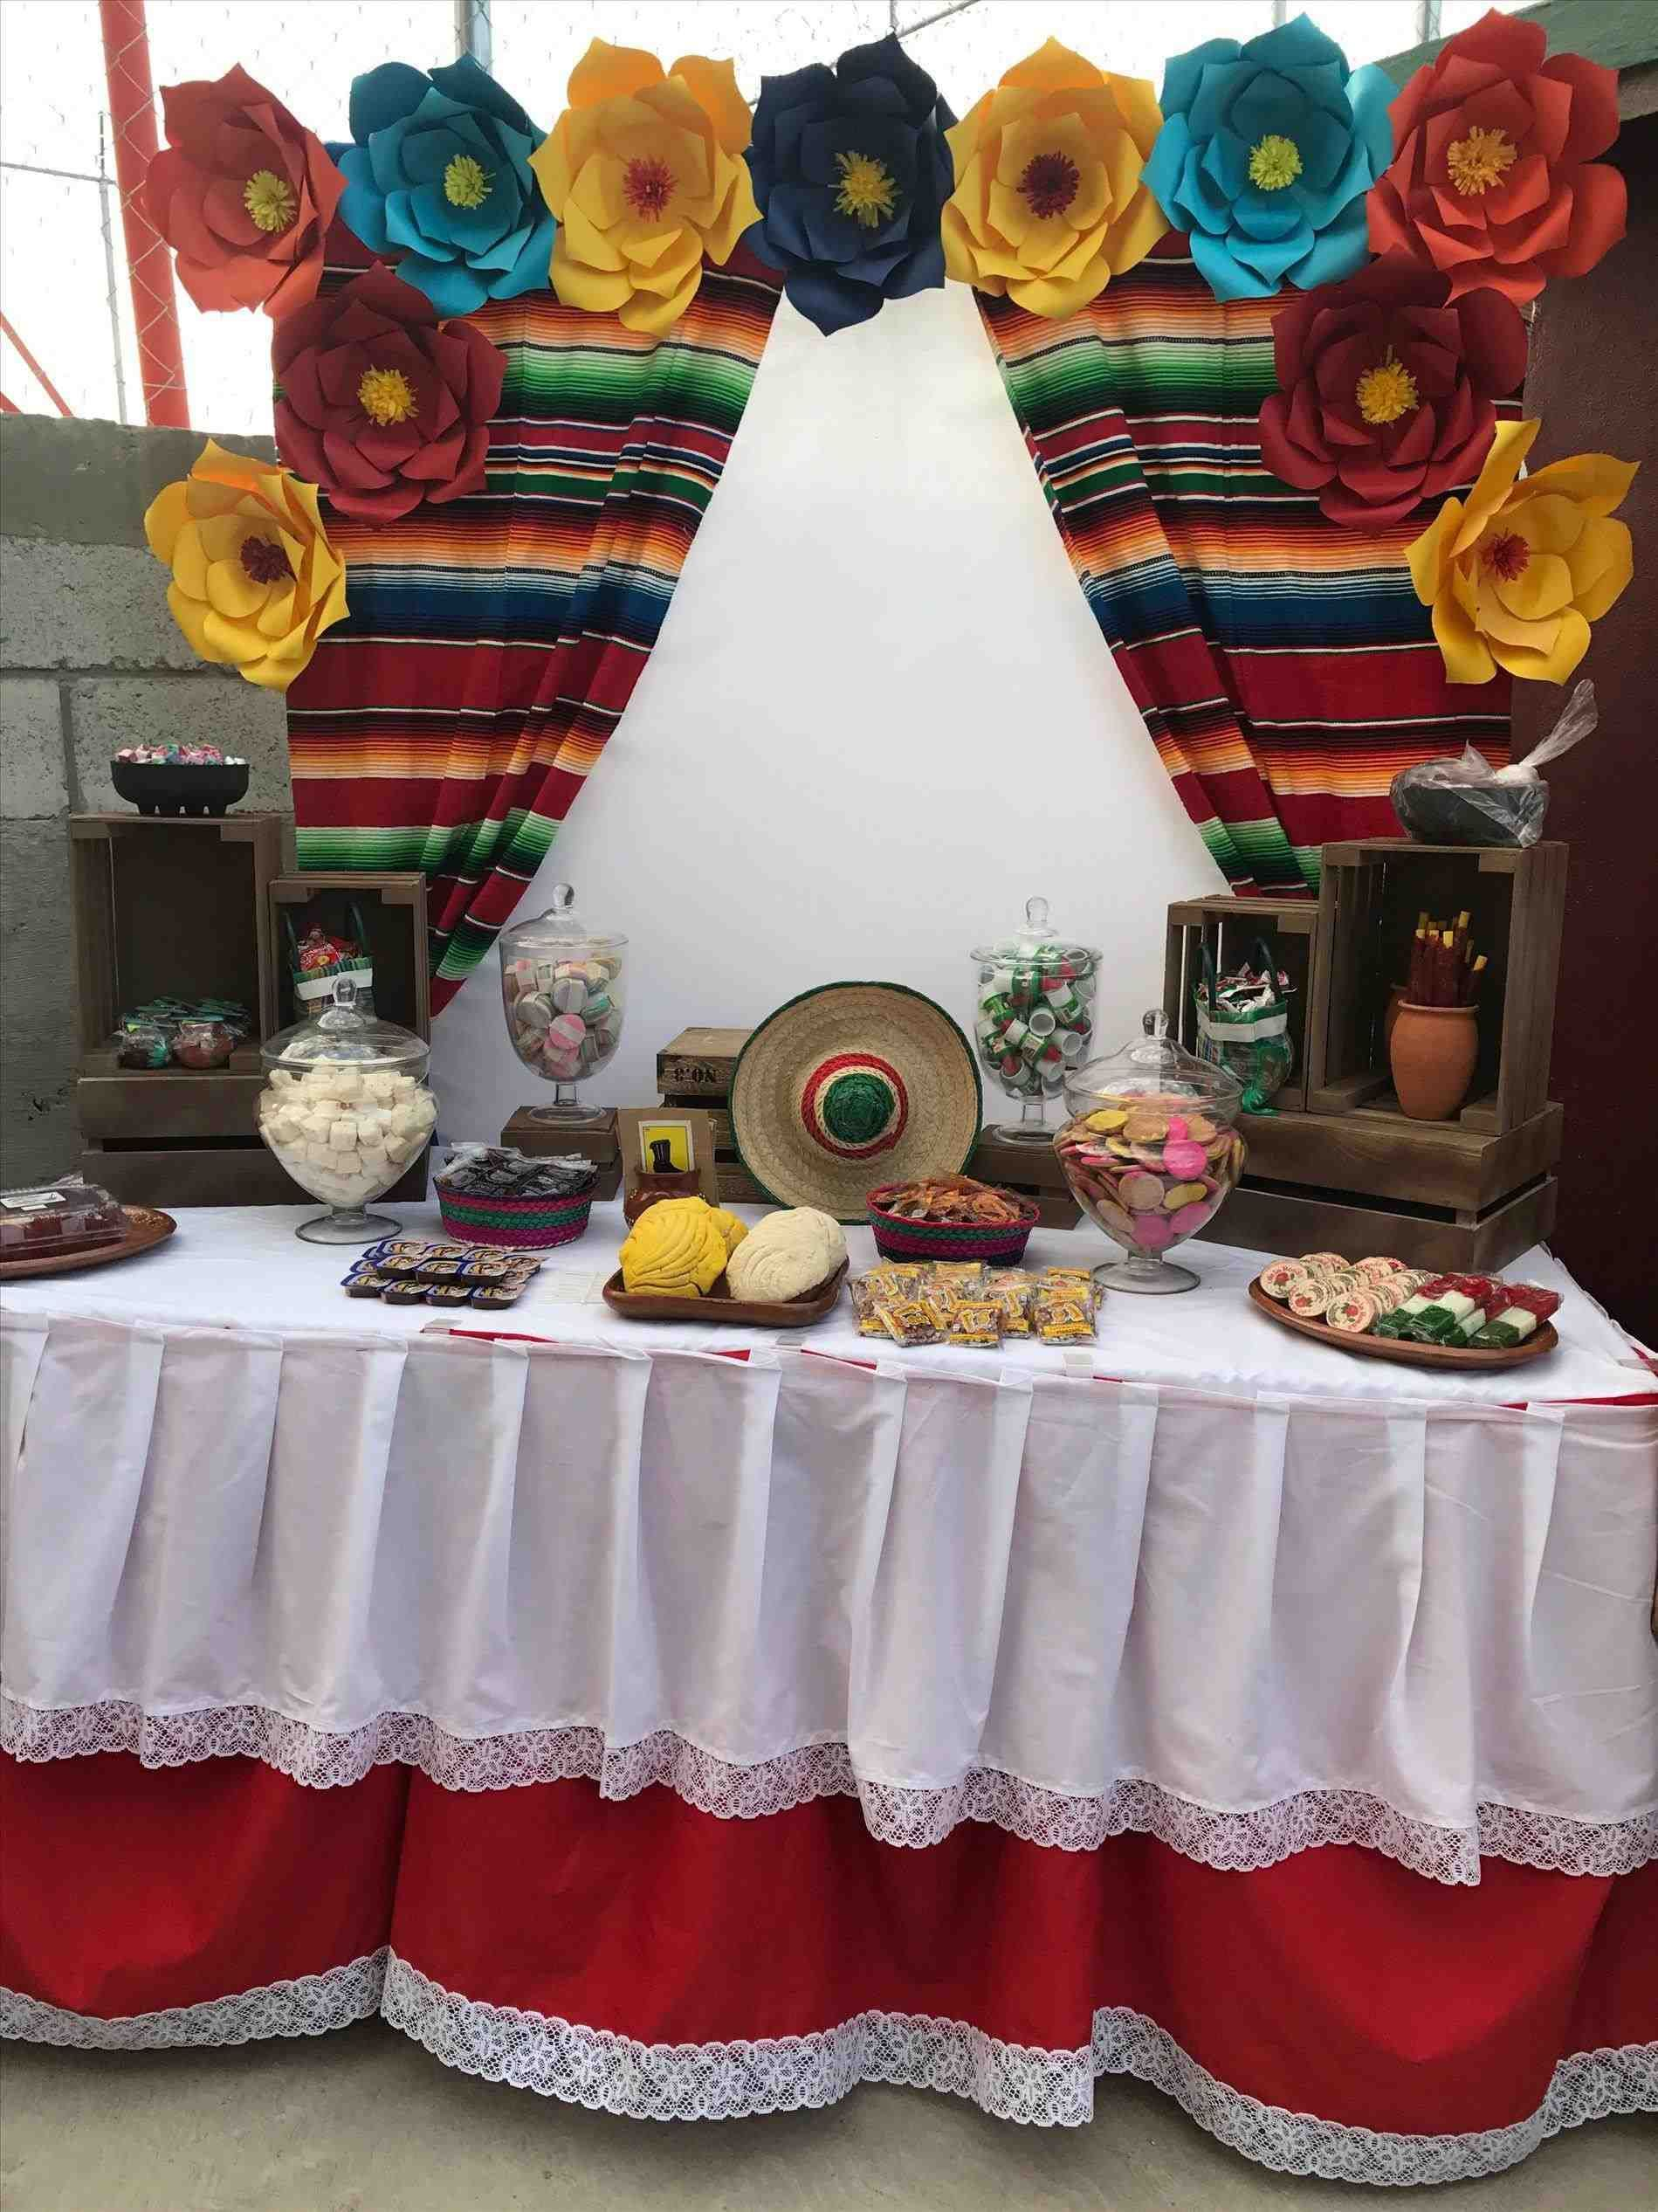 Quinceaneras design mexican themed cake decorations room